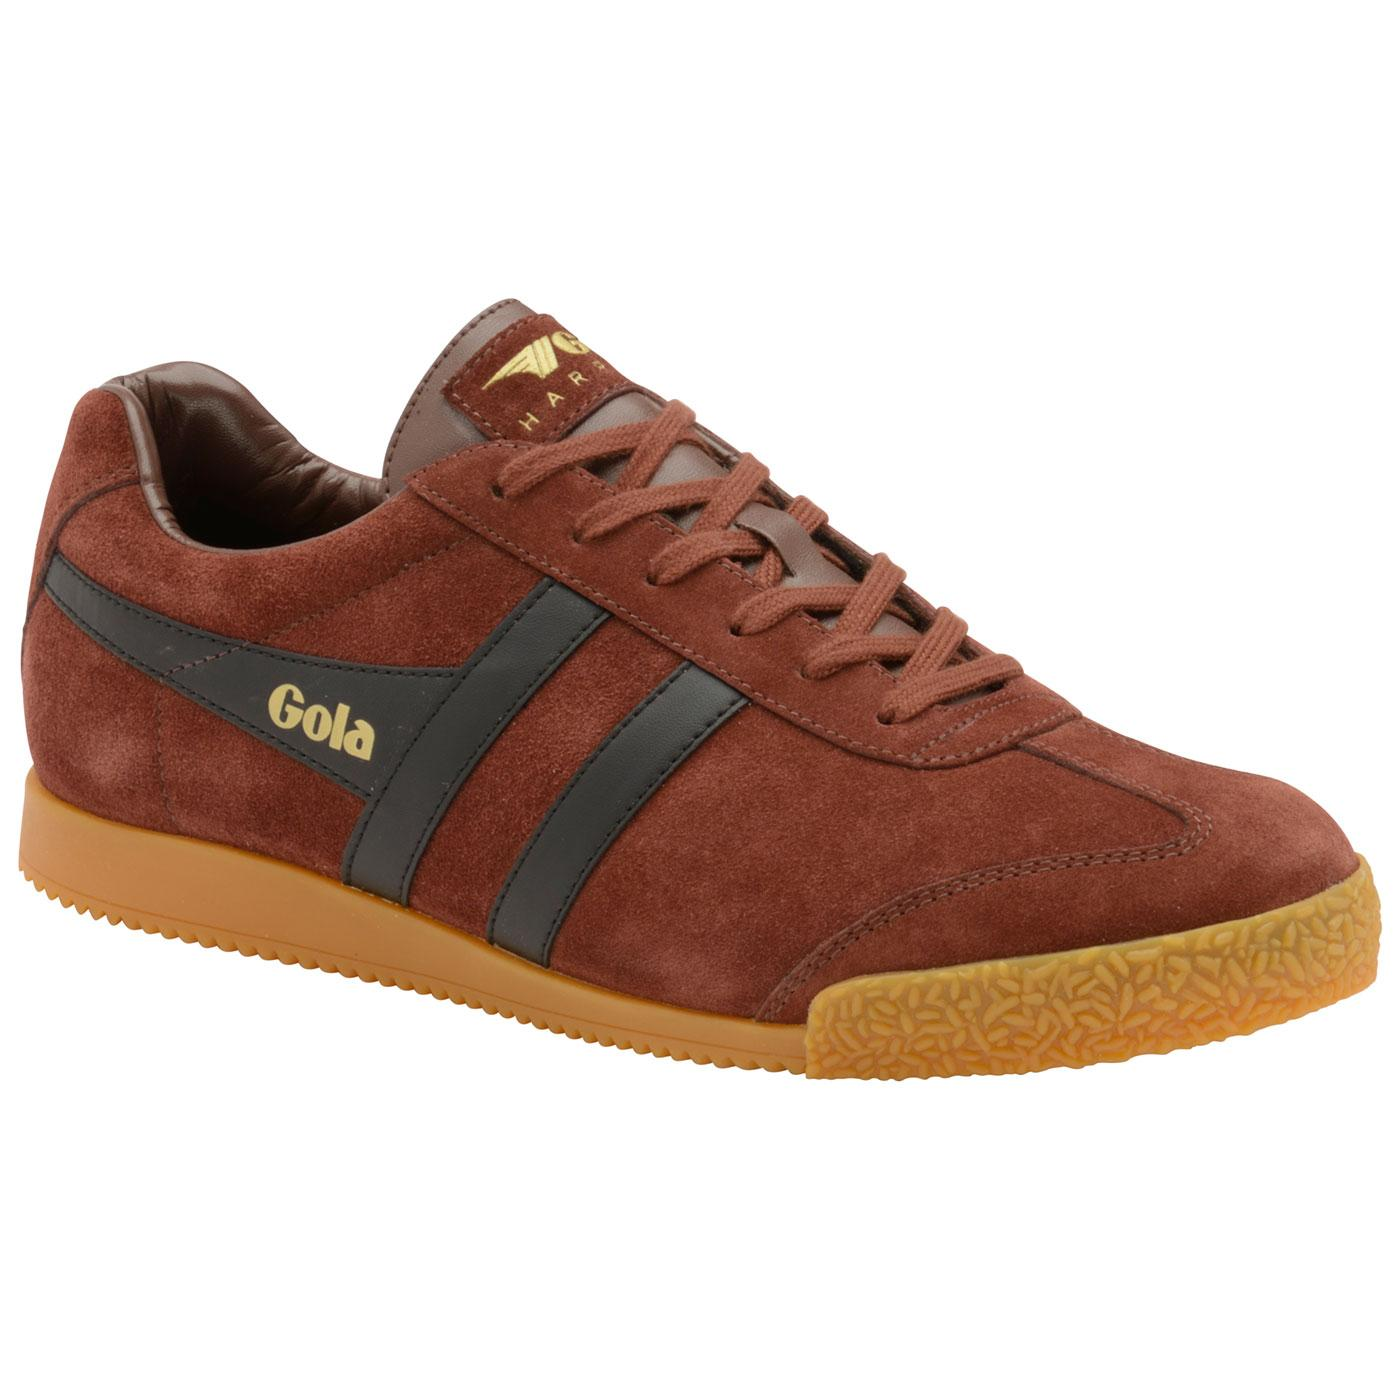 GOLA Harrier Suede Mens Retro 1970s Trainers (C/B)